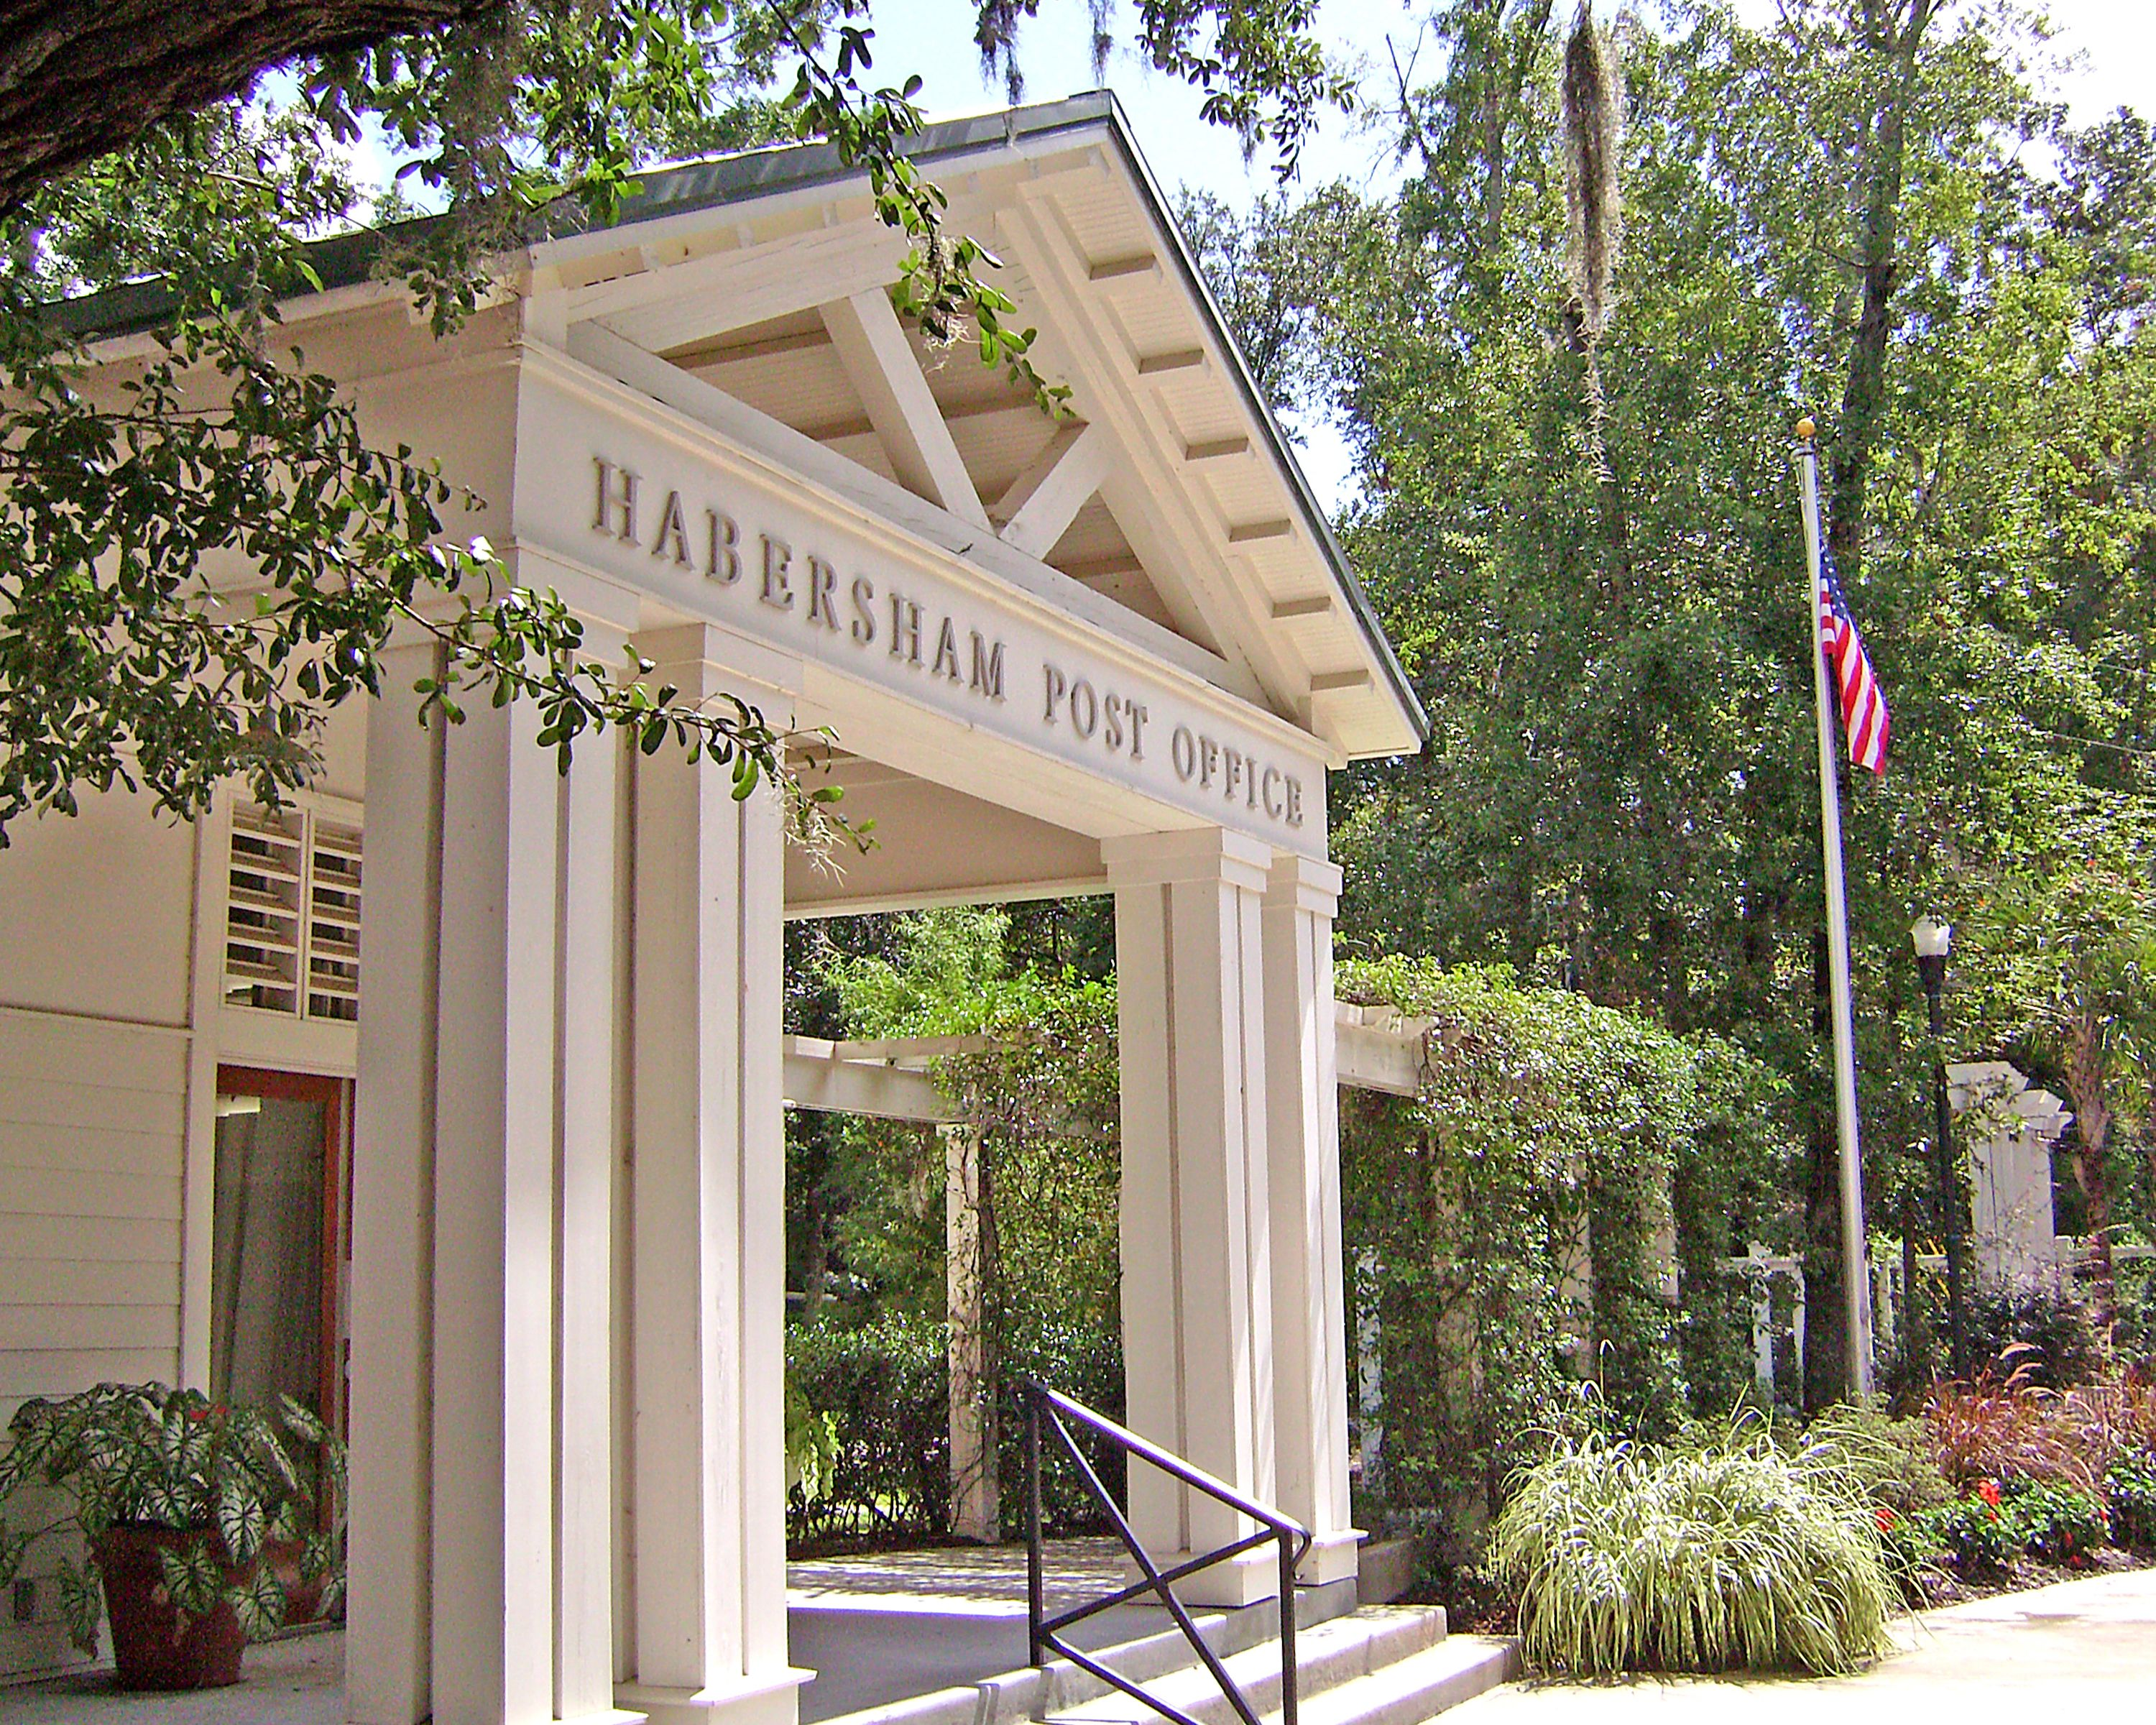 The Habersham Post Office, located in the Habersham Marketplace, gives residents a convenient location to pick up their mail while greeting neighbors or grabbing some take out from their favorite restaurant!